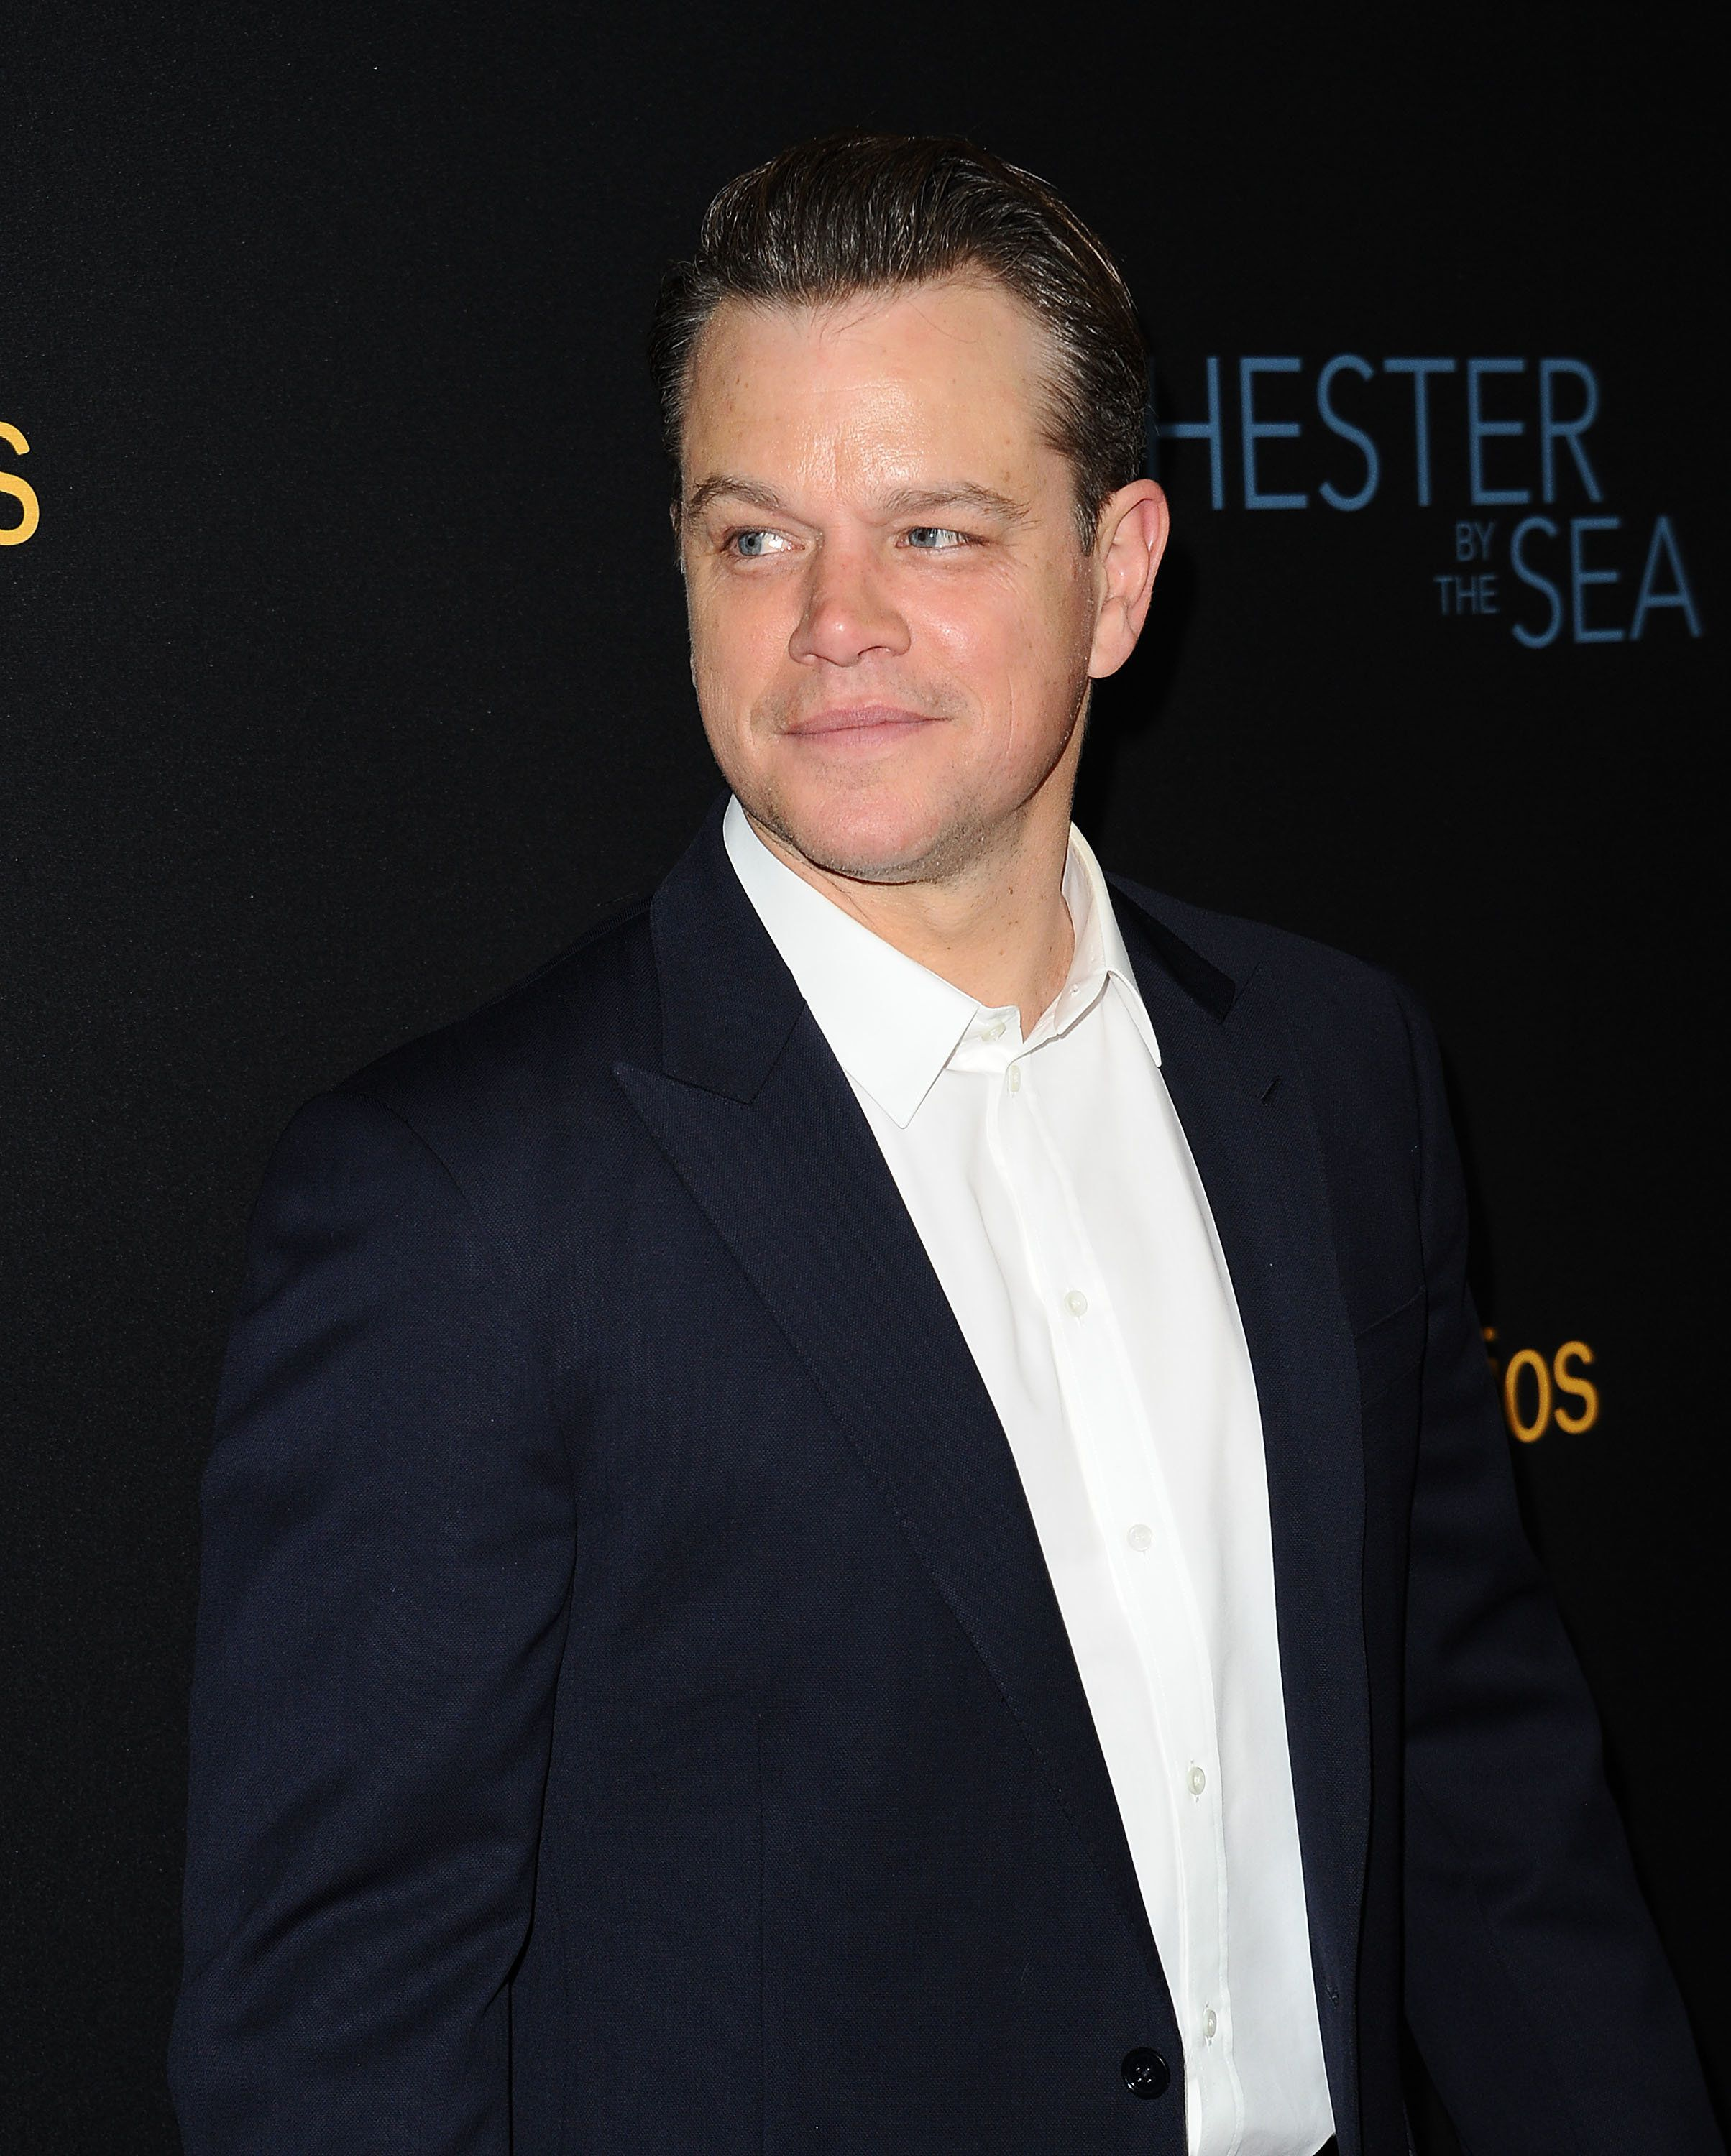 That Time A Little Girl Kicked Matt Damon's Butt And It Changed Him